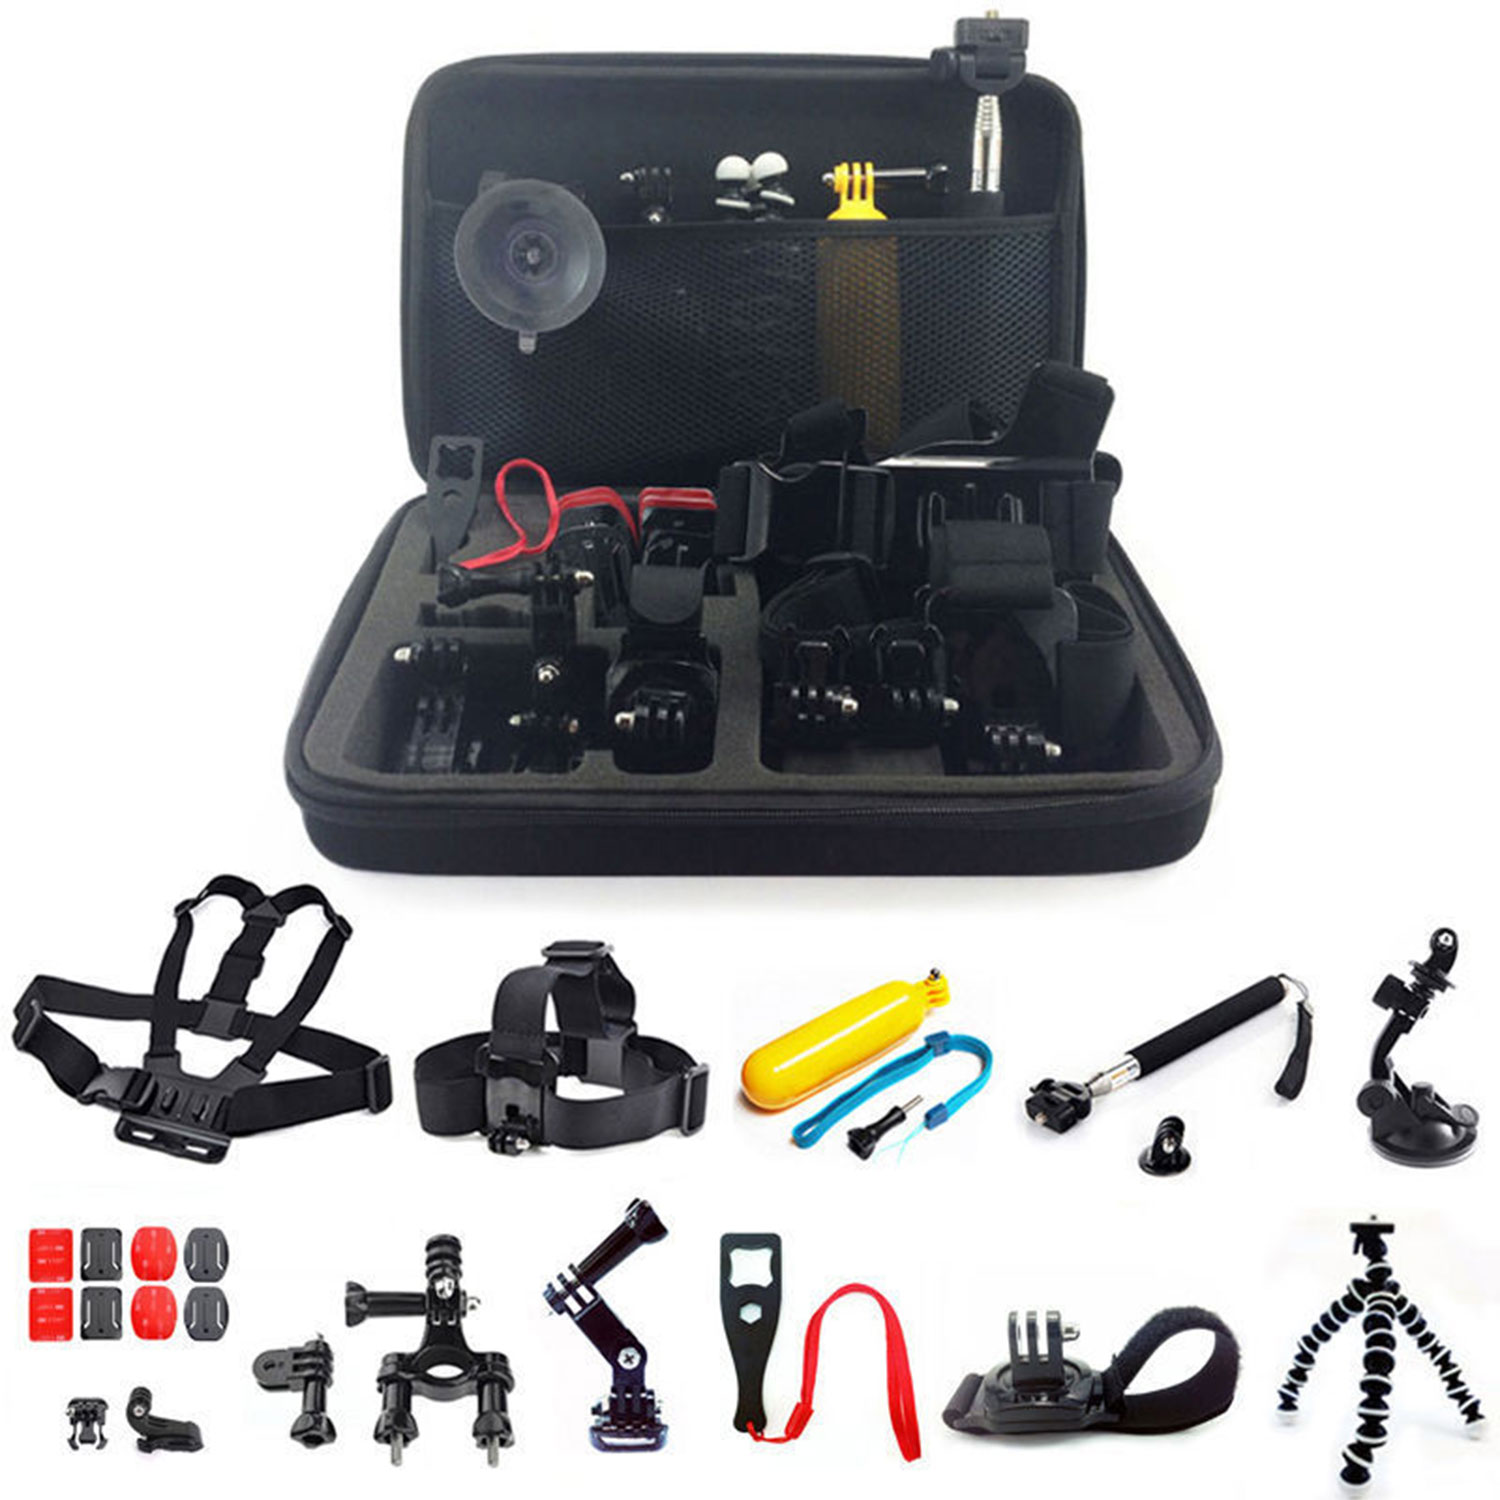 GPCT 26-in-1 Mount Accessory Kit for GoPro Hero 1/2/3/3+/4/5 Camera (Includes Carrying Case, Head Mount, Tripod, Arm, Handlebar Mount and More!)